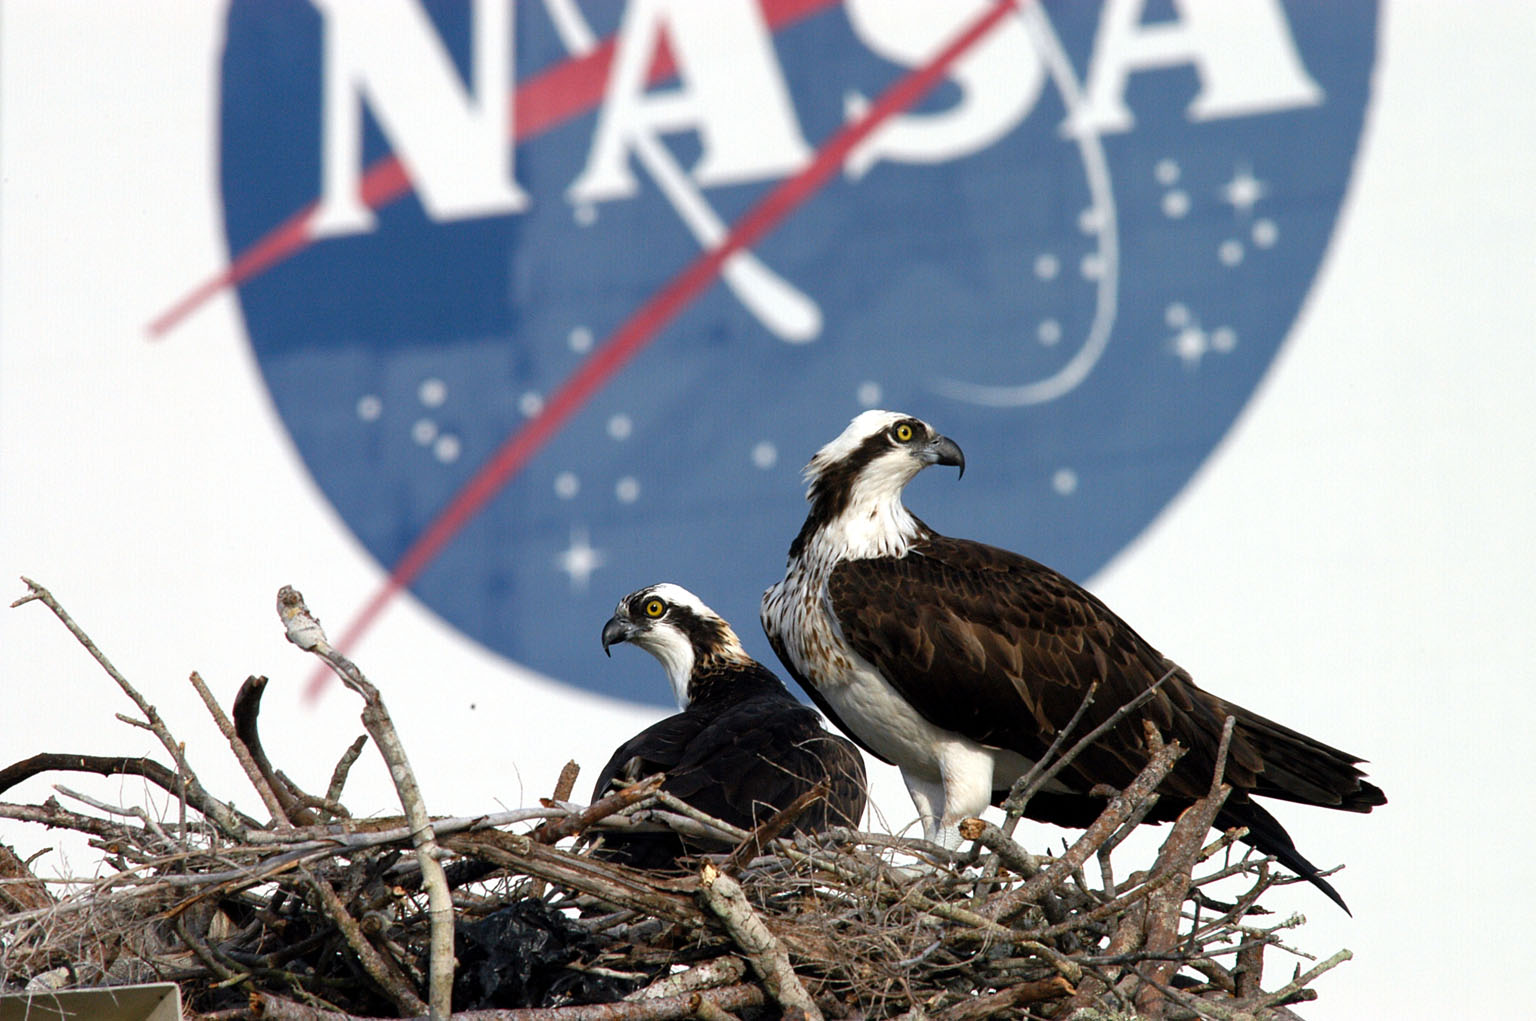 KENNEDY SPACE CENTER, FLA. -- A pair of breeding ospreys have taken up residence in a nest constructed on a speaker pole in the lower parking lot of the KSC Press Site. Eggs have been sighted in the nest. The NASA logo in the background is painted on an outer wall of the 525-foot-tall Vehicle Assembly Building nearby. Known as a fish hawk, the osprey selects sites of opportunity in which to nest -- from trees and telephone poles to rocks or even flat ground. In North America, it is found from Alaska and Newfoundland to Florida and the Gulf Coast. Osprey nests are found throughout the Kennedy Space Center and surrounding Merritt Island National Wildlife Refuge.